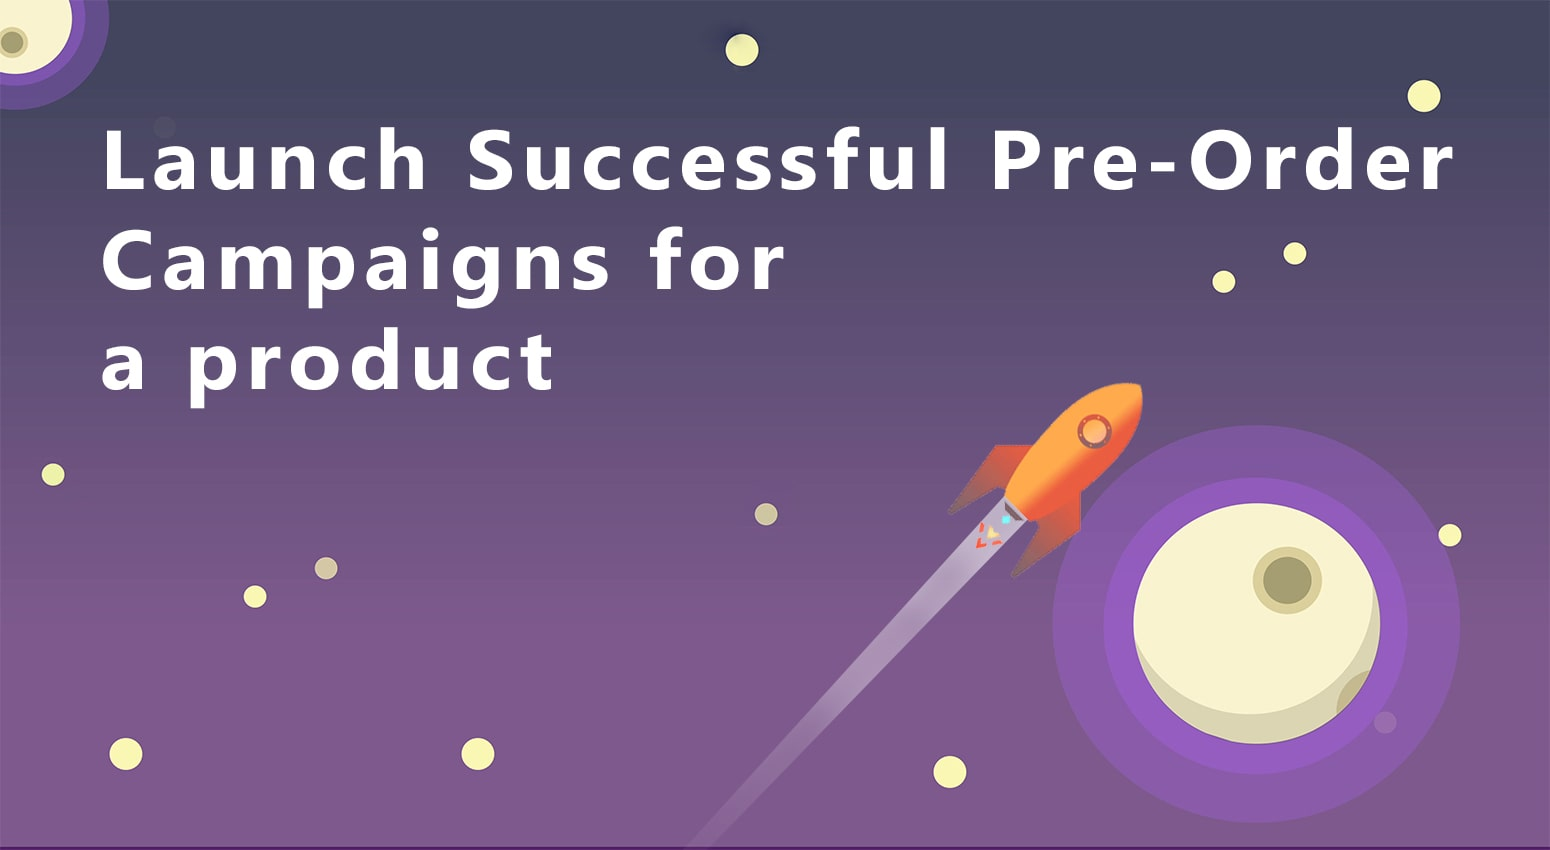 How to Launch Successful Pre-Order Campaigns for a product